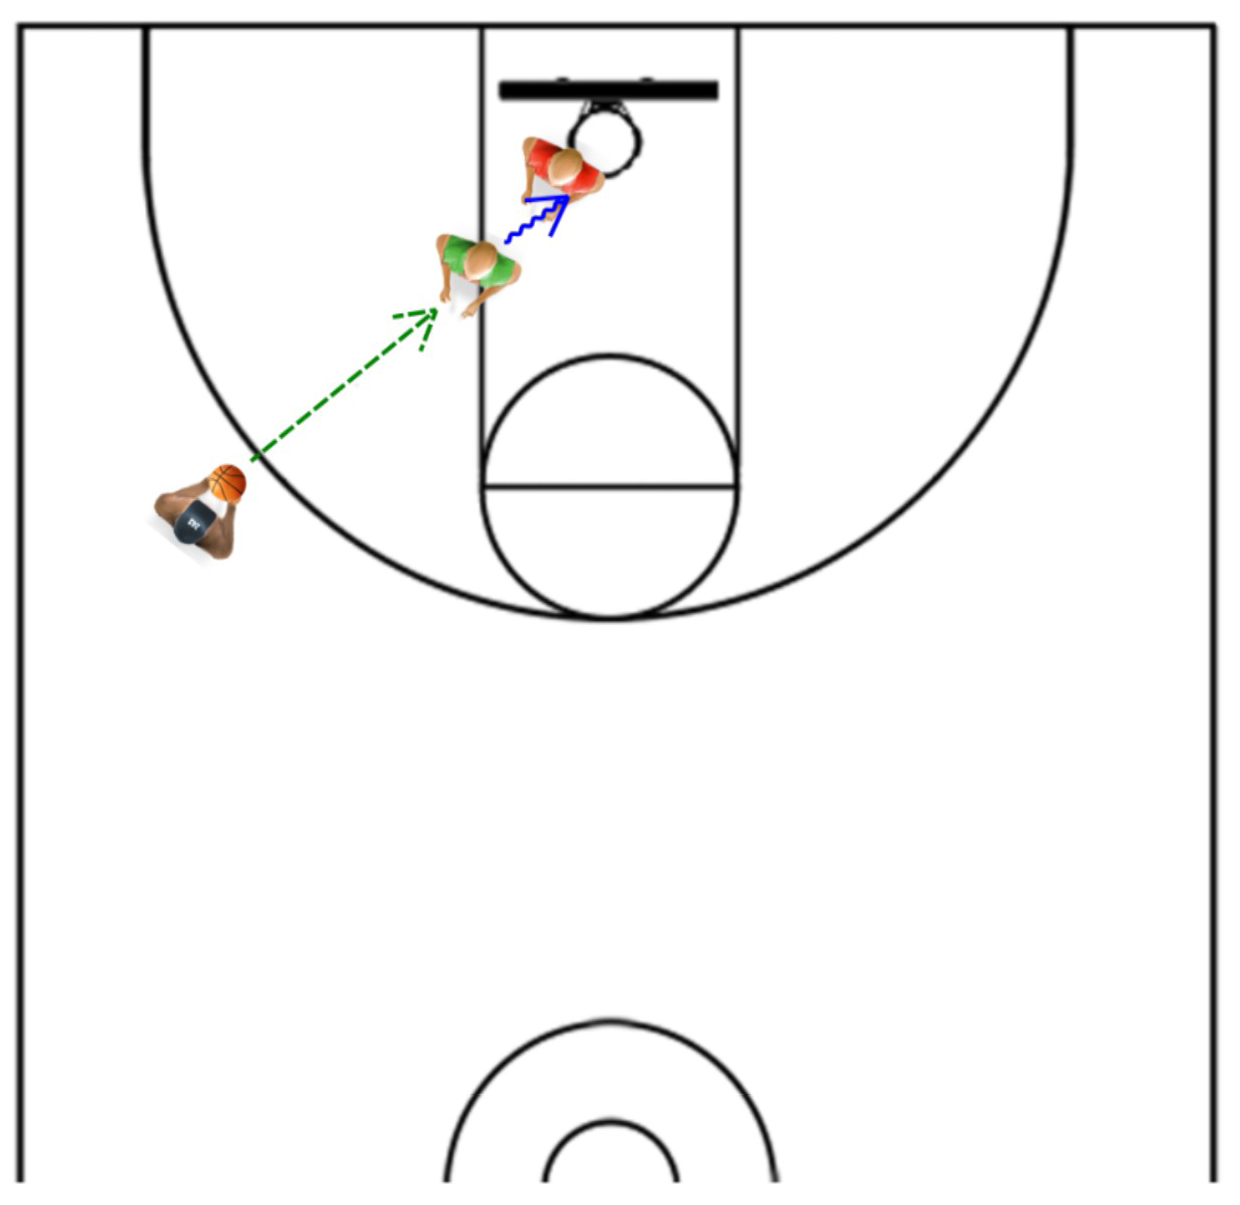 coaching basketball Coaches are always looking for new drills here are 27 basketball drills and games for kids that you can use at your practices to develop your players.